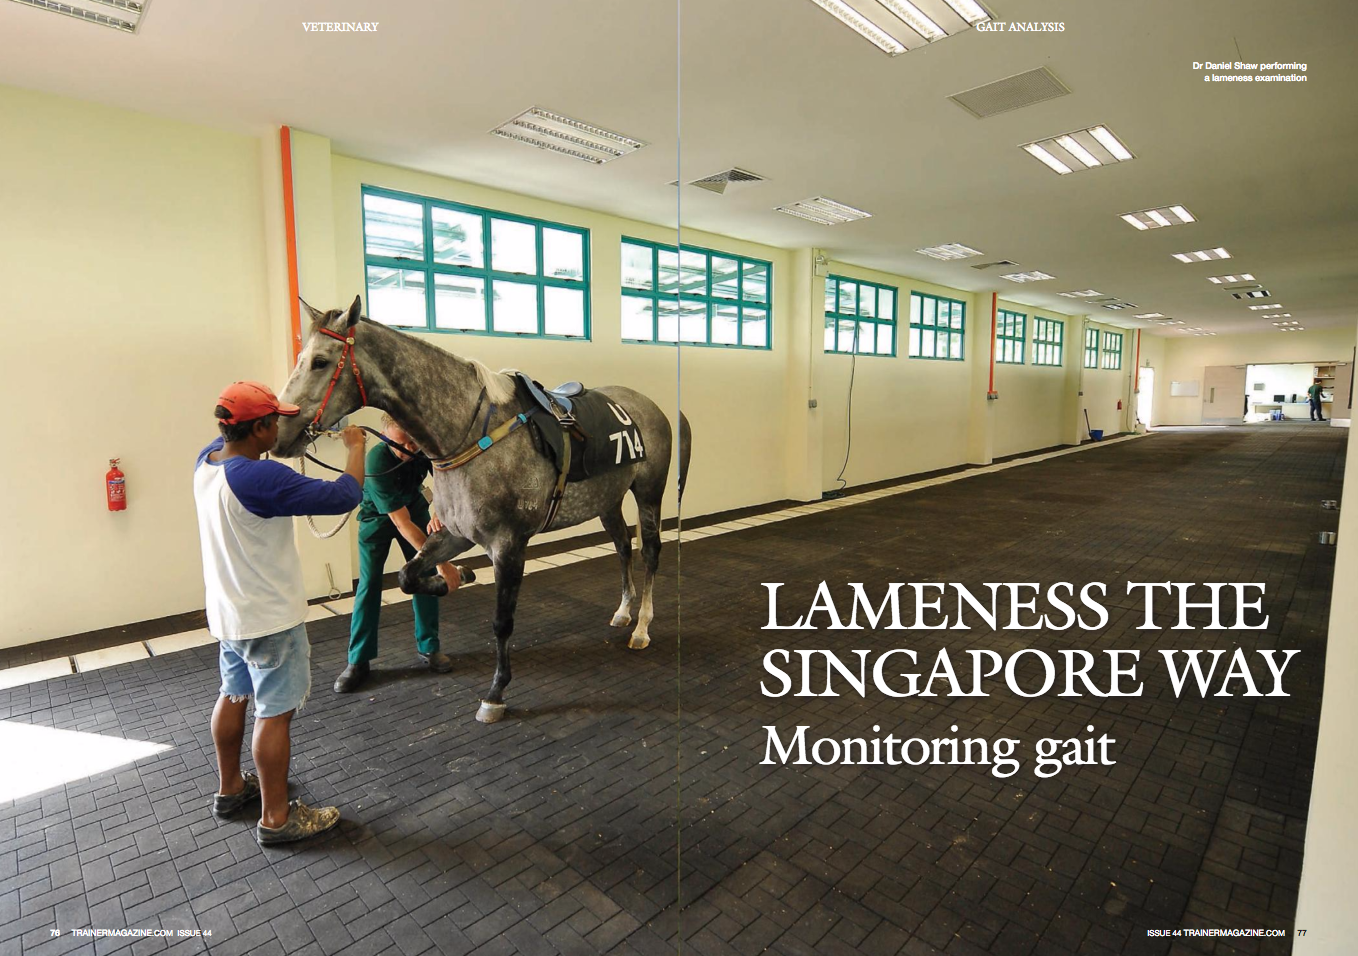 Lameness the Singapore way: HBLB study investigates the potentials of long-term monitoring of gait in racing Thoroughbreds    << HBLB logo near here>>      Because I was born under a lucky star, I was offered the sensational opportunity to conduct a two-year long study in the beautiful, hyper-efficient, and very hot island of Singapore. The study 'Early detection of musculoskeletal injury in the Thoroughbred through monitoring of movement symmetry' started in November, 2014, and is funded by the Horserace Betting Levy Board (HBLB), and it was designed by Dr. Thilo Pfau together with professors Renate Weller and Kristien Verheyen from the Royal Veterinary College in London.    Traditional veterinary evaluation of lameness is subjective. Objective tools to document and measure specific forms of lameness and changes in gait are needed and will allow horses to be evaluated more consistently over time, looking for patterns of lameness developing during training. It may also be possible to predict specific sites of injury or pain based on the patterns observed with gait analysis.     The idea behind this HBLB project was simple: follow as many Thoroughbreds in training as possible on a monthly basis for a year and a half, tracking their soundness with a sensor-based gait assessment device at the Singapore Turf Club (STC), then correlate their medical history and their soundness/lameness in an attempt to determine which of the many gait parameters that are measured by the gait analysis system could be used to detect musculoskeletal injuries, ideally before they become clinically apparent.    The venue (Fig.1)    The Singapore Turf Club is a modern racetrack with an all-weather surface and a turf track. The horses that regularly race there are stabled around it by the different trainers in similar stable blocks and are treated by the same vets at the STC veterinary clinic. Horses coming in and leaving the STC undergo stringent quarantine and veterinary checkups. Most HBLB-f